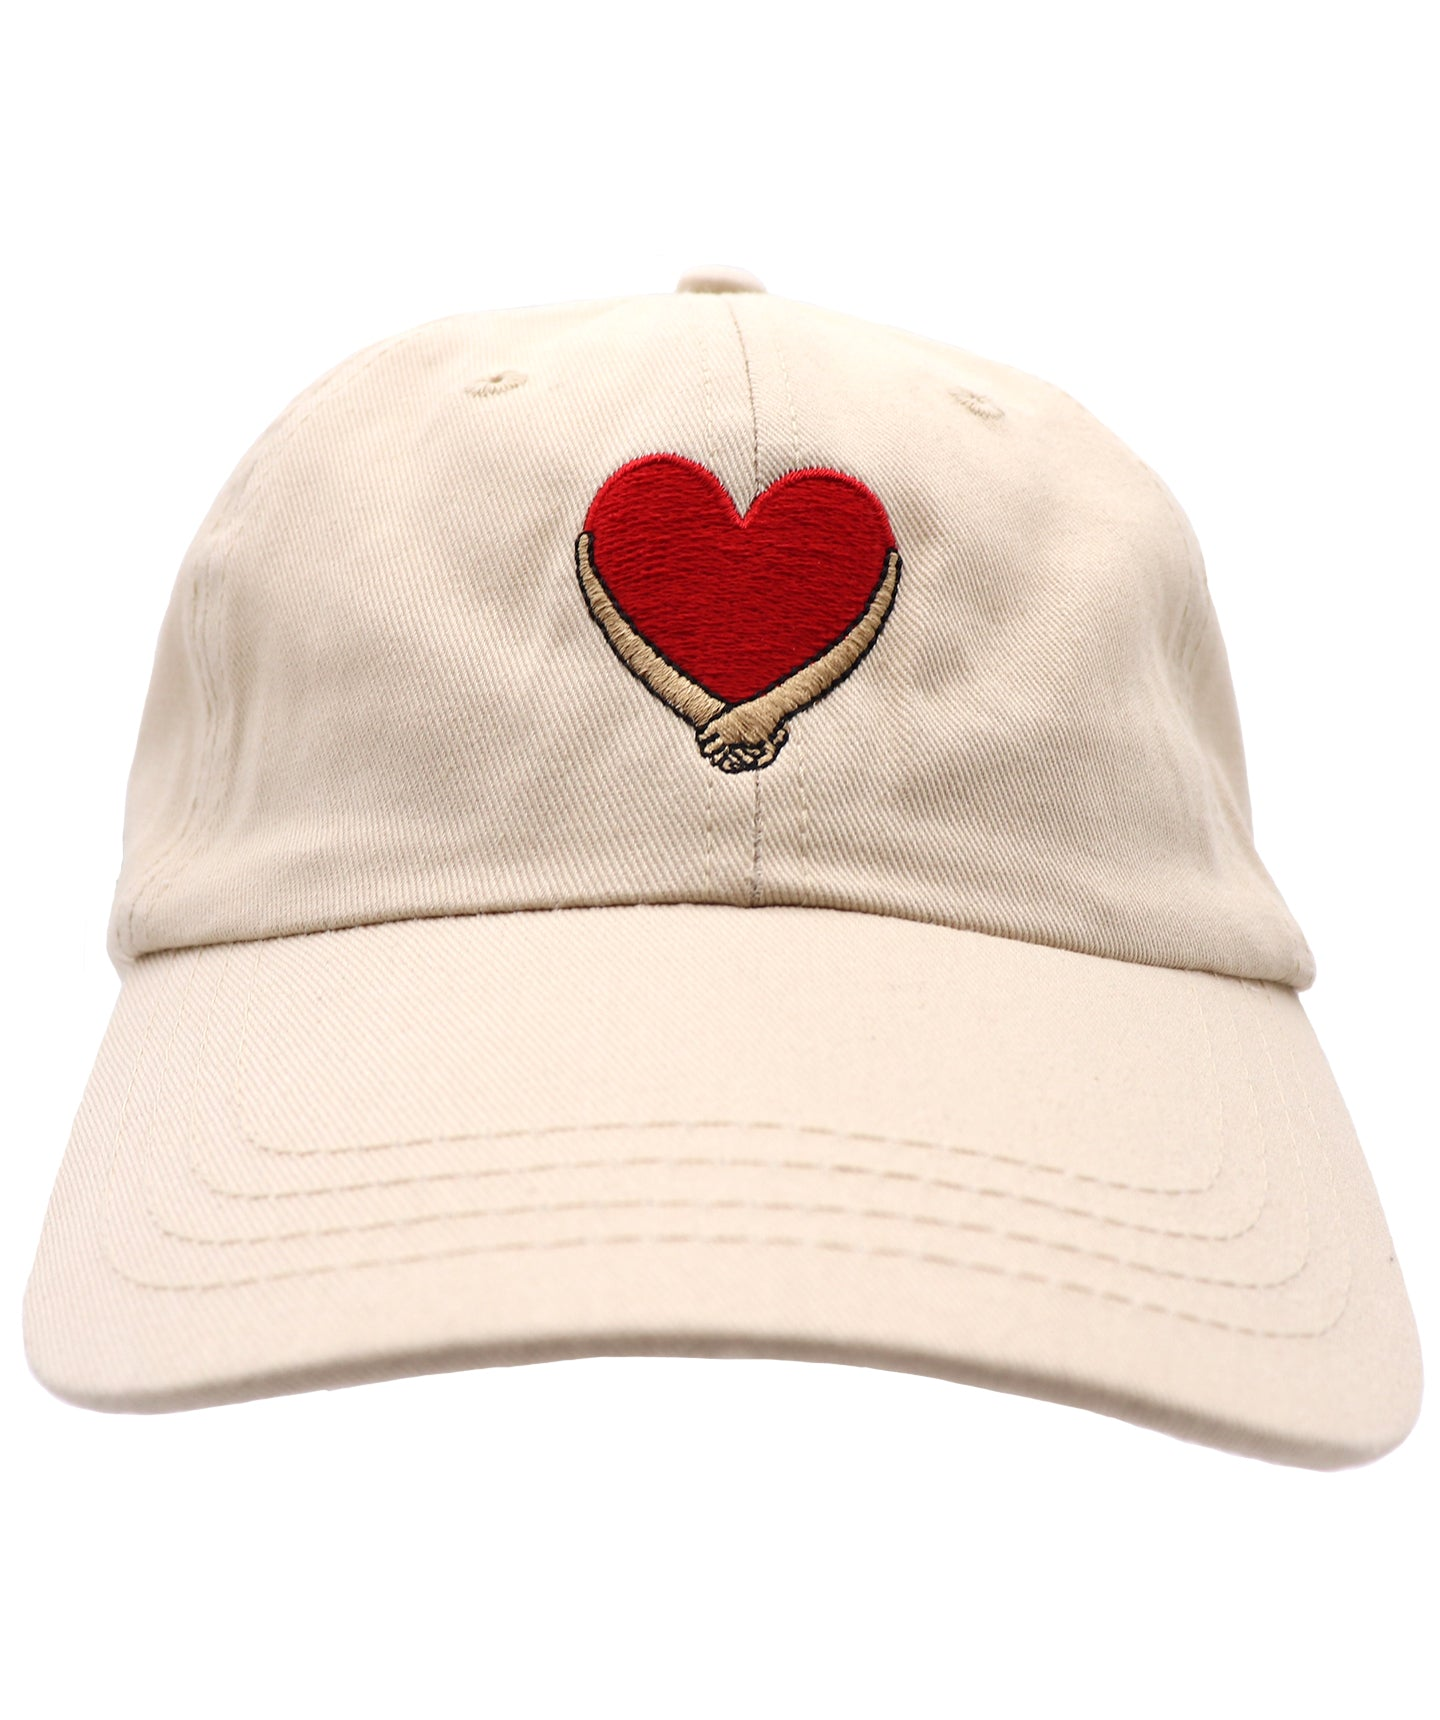 Solid Tan Stone hat with red heart and tan beige hands embracing over the heart, embroidered baseball hat. Embracing hands show love, peace, and solidarity. All lives matter.